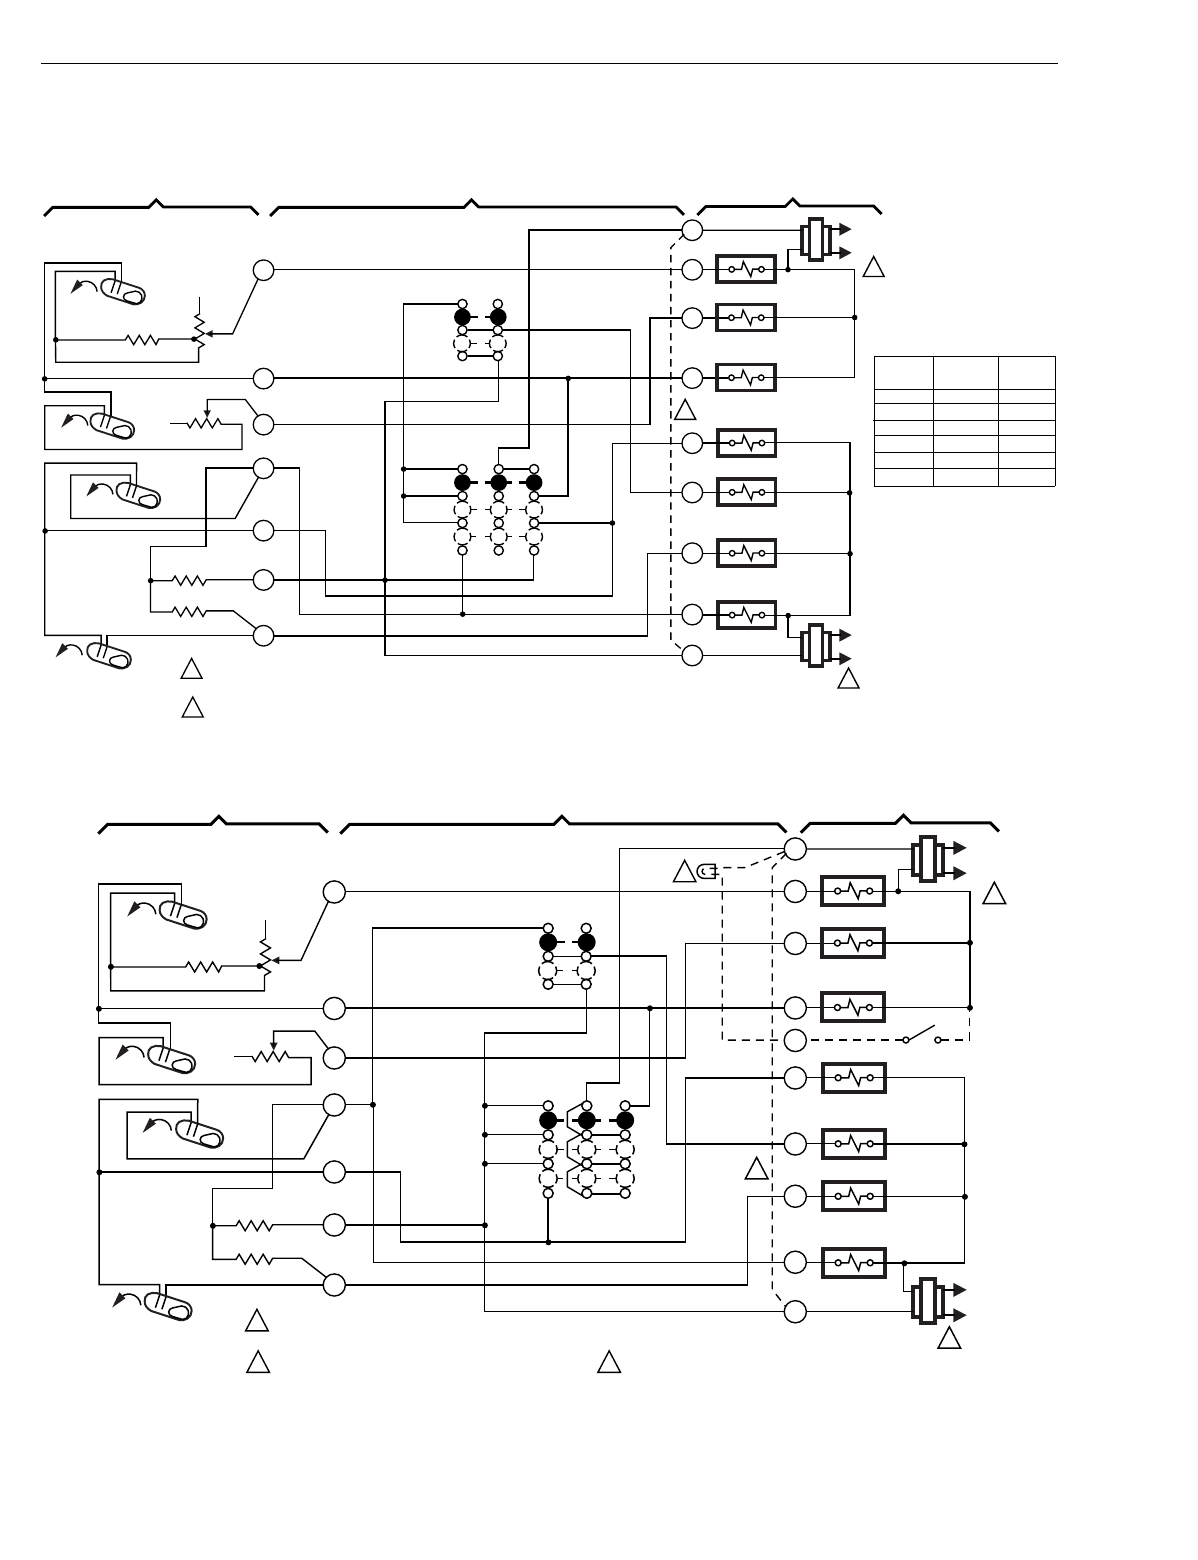 2000 Yamaha Gp1200 Starter Motor Exploded Diagram And Parts as well Wiring Diagram For Electric Cooling Fan besides Wiring Diagram For John Deere Sabre besides Electrical Wiring Diagrams For Air Conditioning Systems Part also 2014 Harley Davidson Ultra Limited Wiring Diagram. on yamaha electric guitar wiring schematic